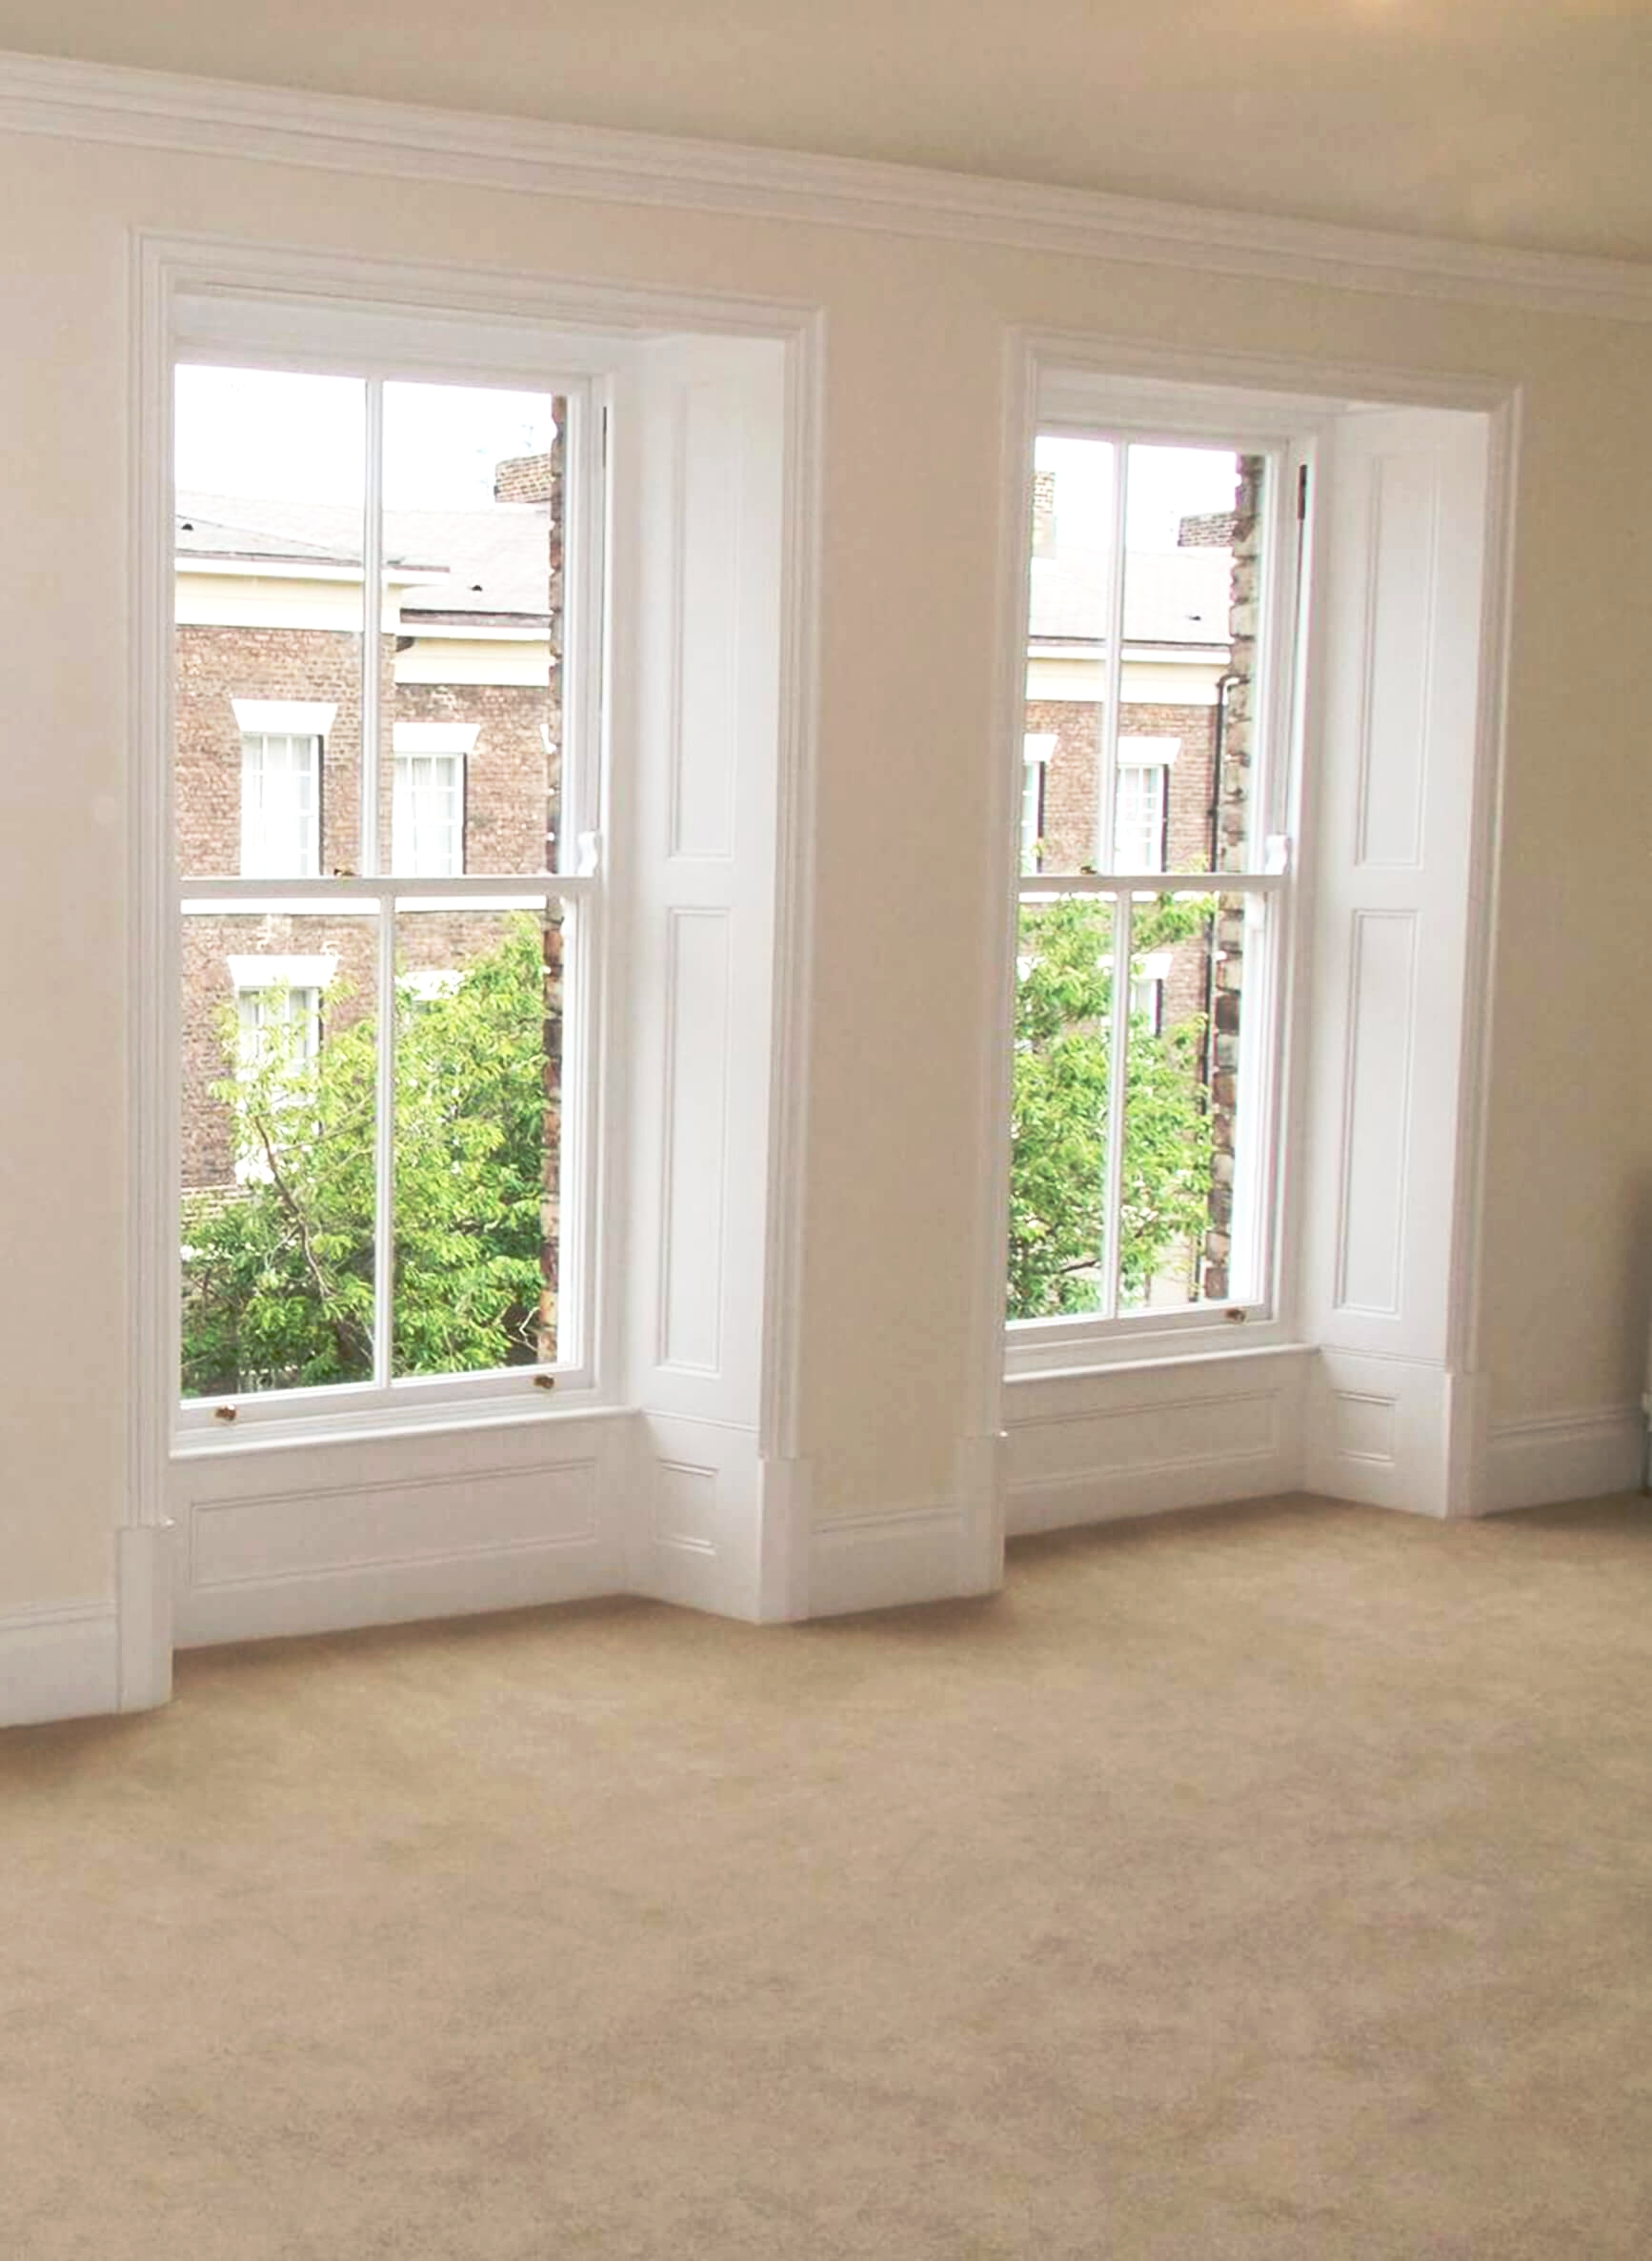 [slide-left]Sliding sash windows are our flagship product. -      Normal   0               false   false   false      EN-GB   X-NONE   X-NONE                                                                                                                                                                                                                                                                                                                                                                                                                                                                                                                                                                                                                                                                                                                                                                                                                                                                                                                                                                                                                                                                                                                                                                                                                                                                             /* Style Definitions */  table.MsoNormalTable 	{mso-style-name: